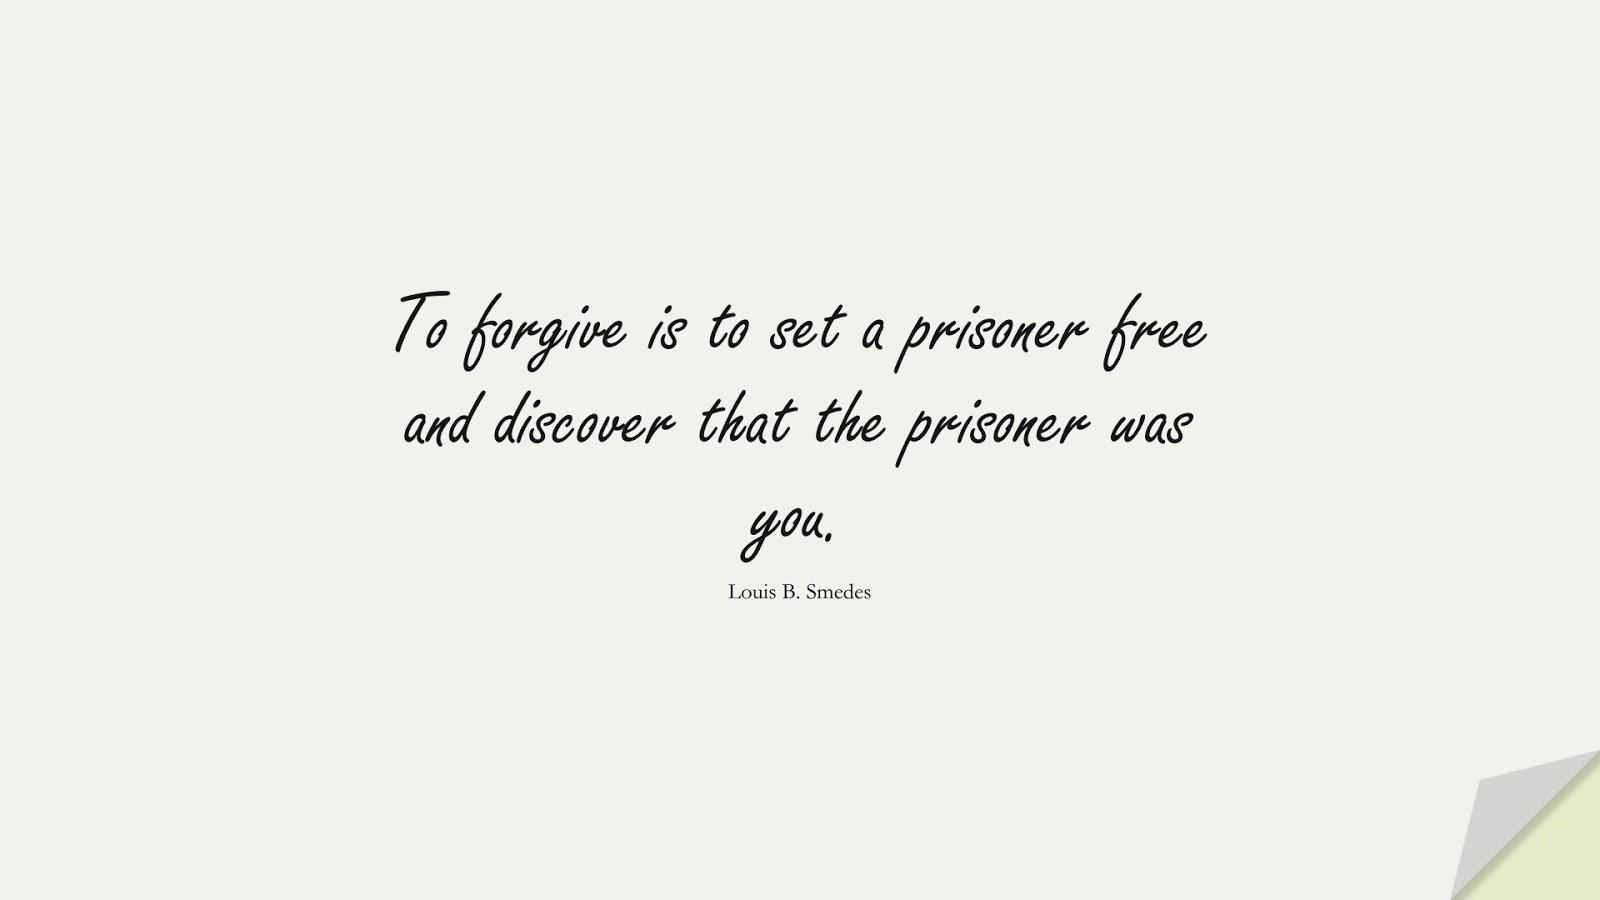 To forgive is to set a prisoner free and discover that the prisoner was you. (Louis B. Smedes);  #LoveQuotes